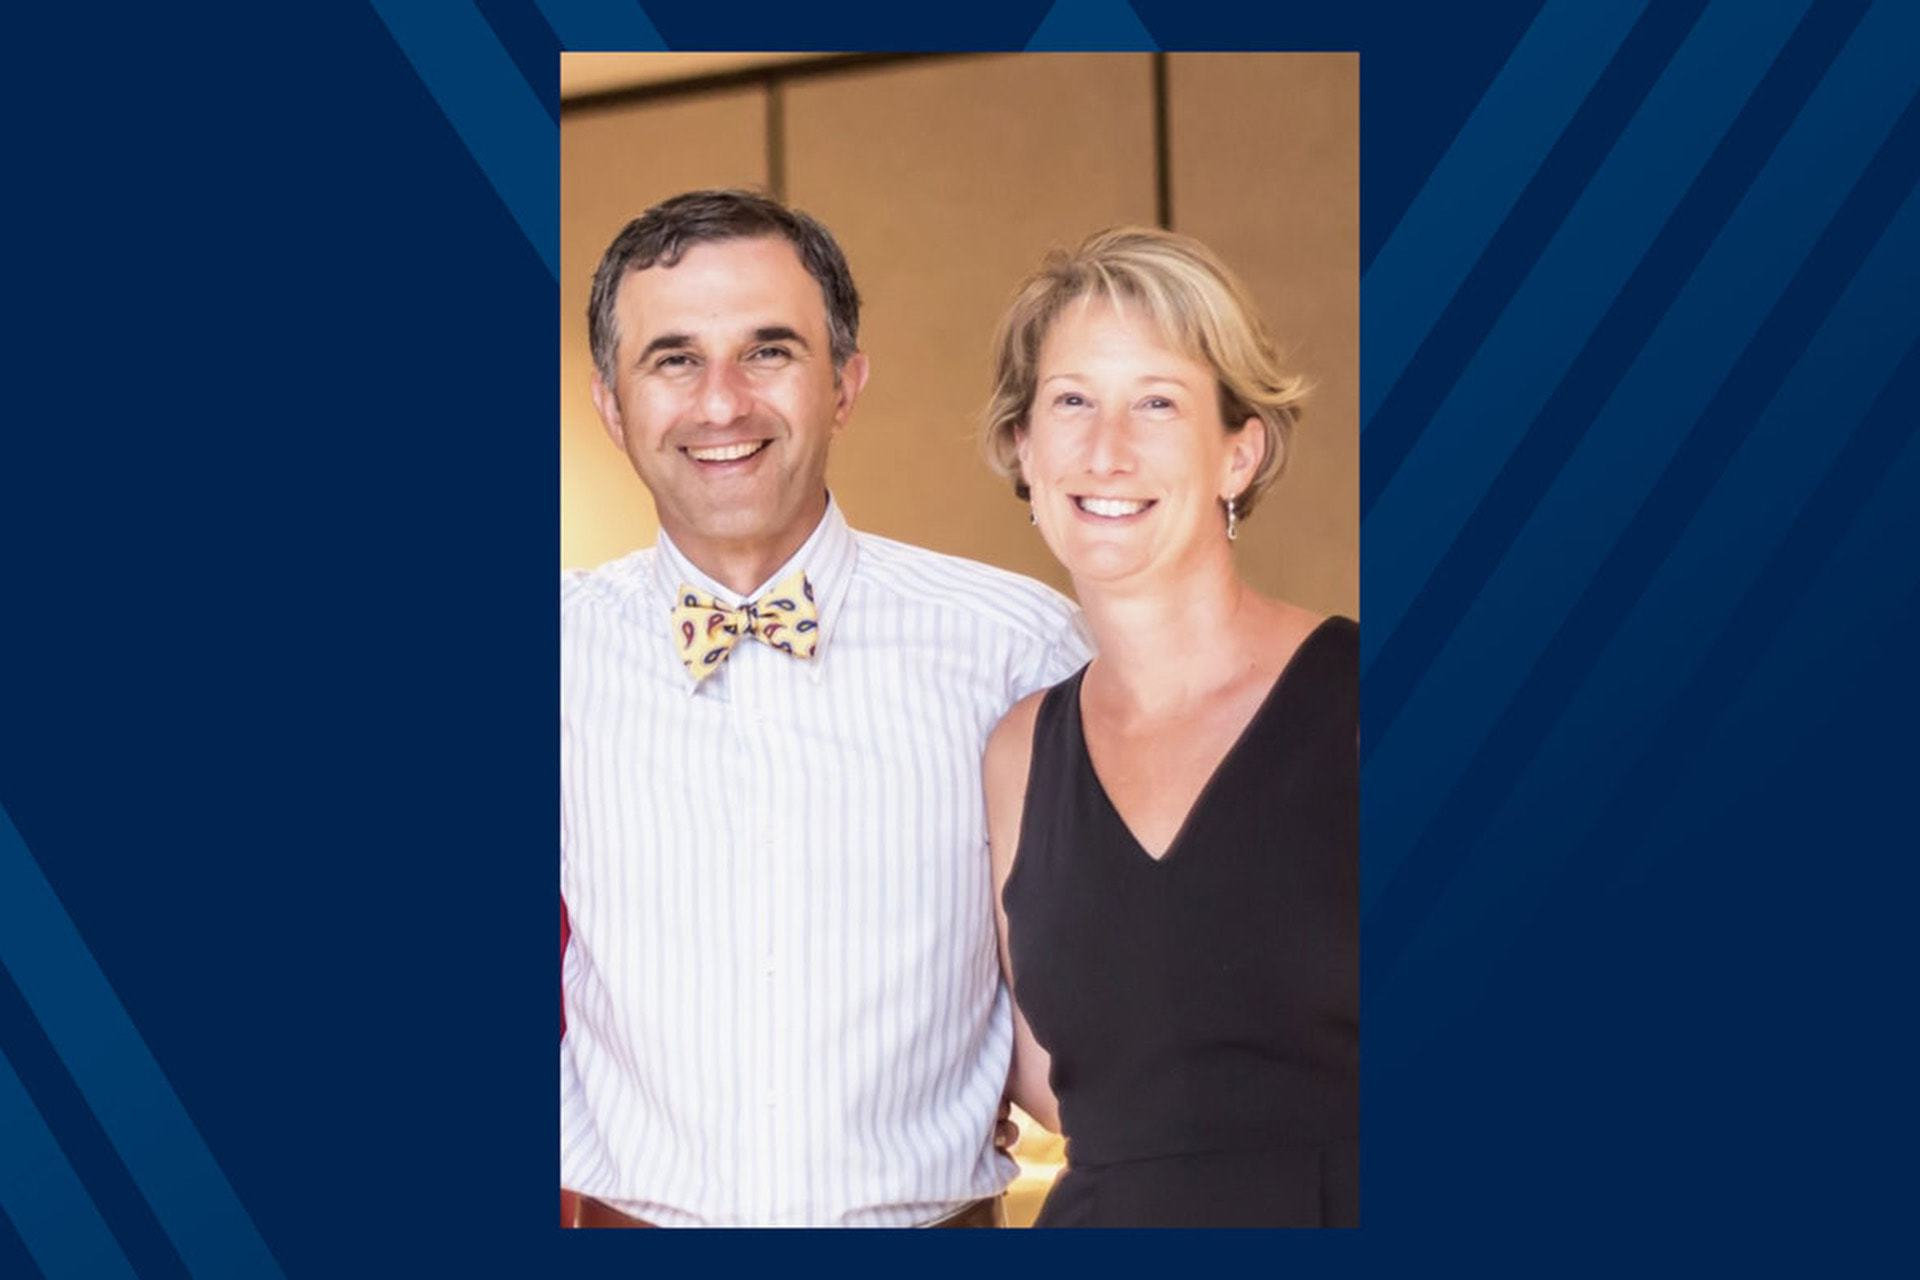 Momen family pays tribute to WVU with School of Dentistry scholarship